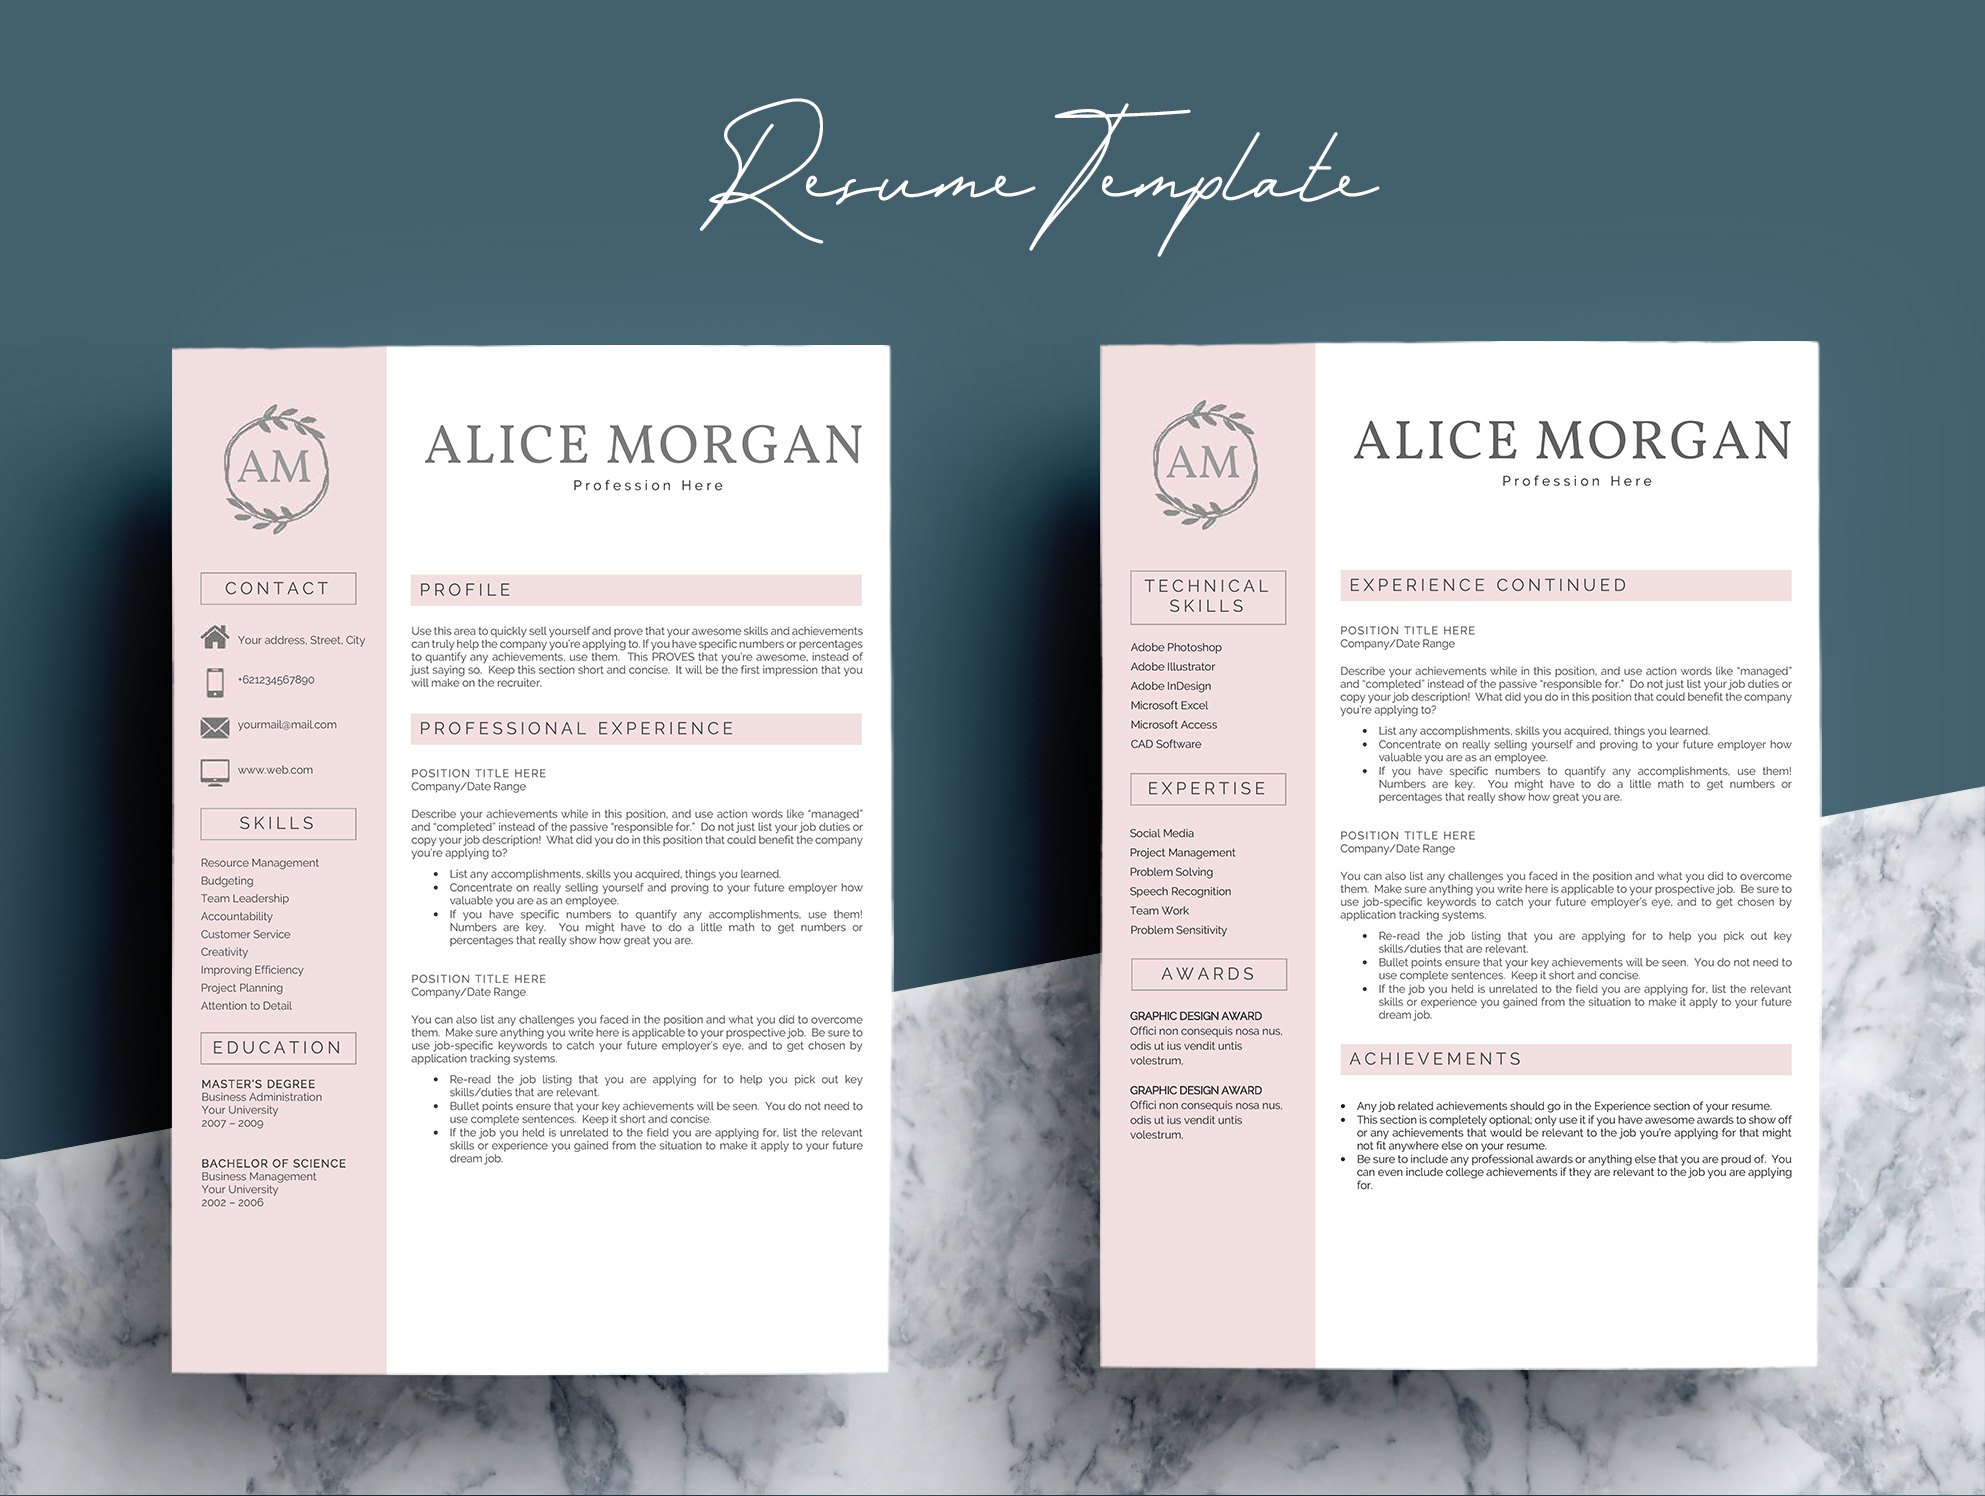 Professional Creative Resume Template - Alice Morgan example image 4